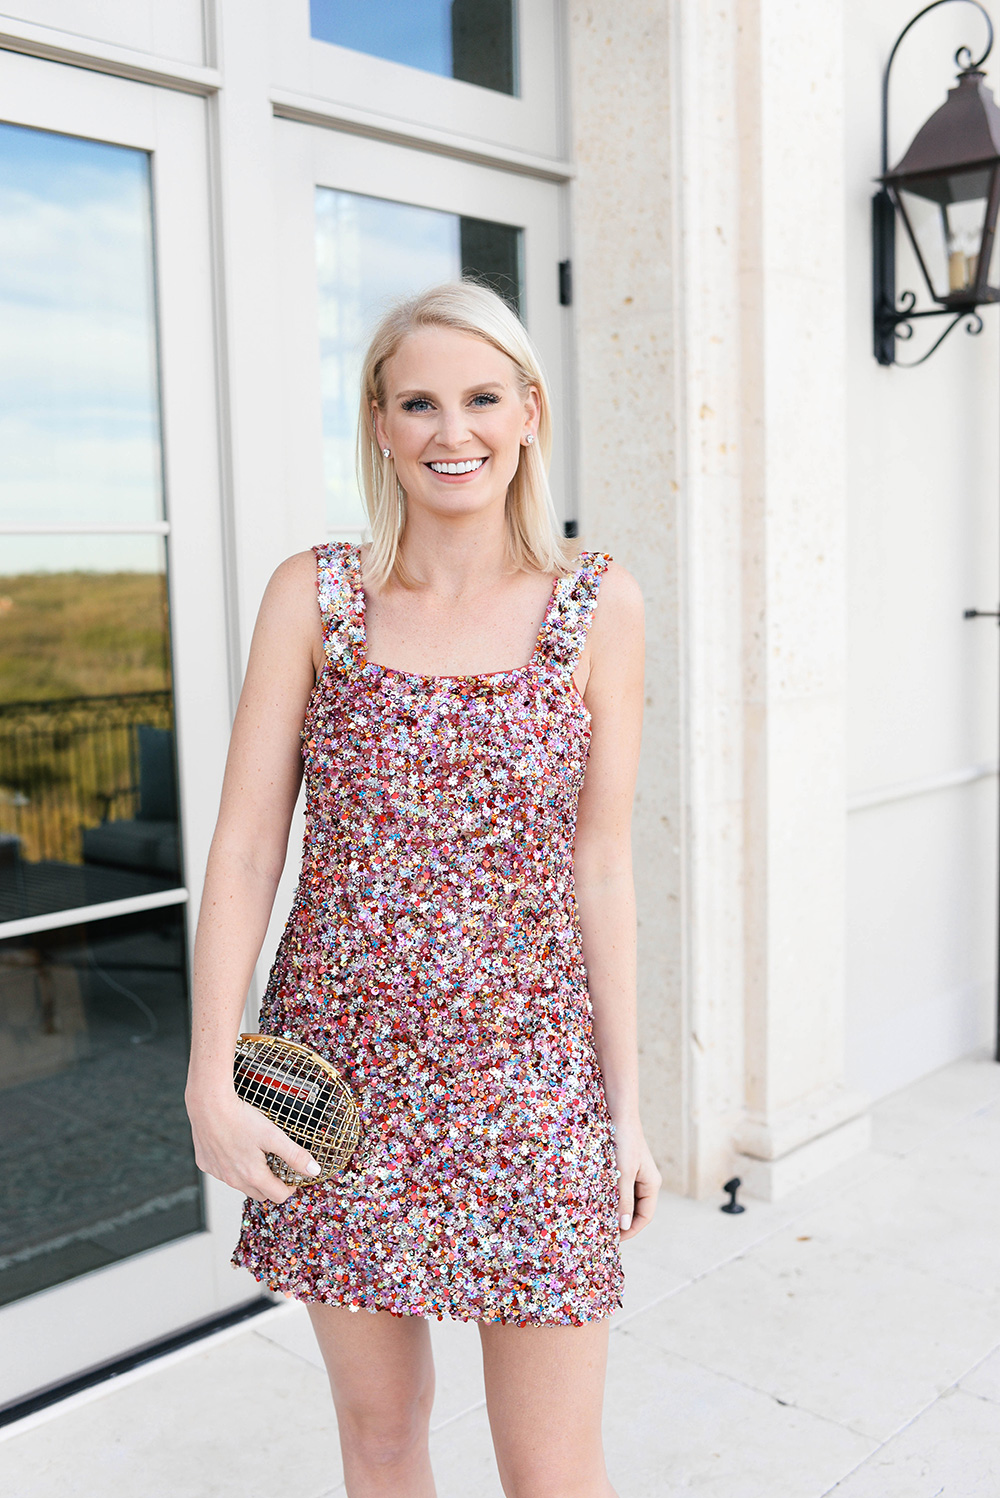 Alexis Sequin Dress | Holiday Party Outfit Guide